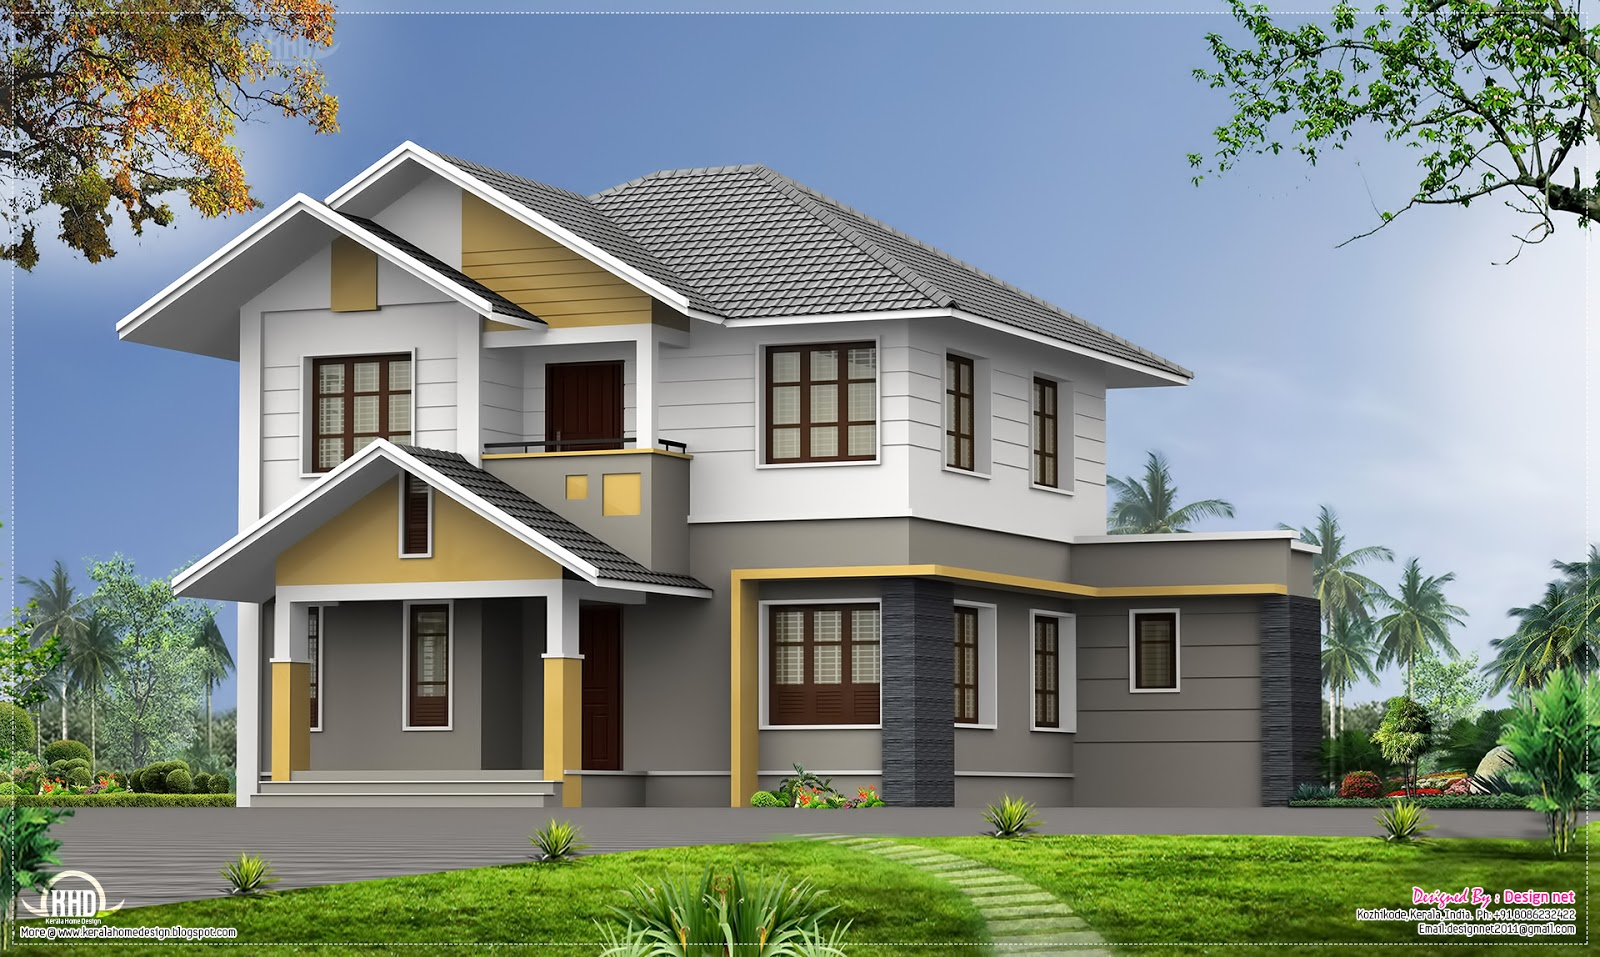 Home Plans 2000 Sq Feet Joy Studio Design Gallery Best: 2000 sq ft house images